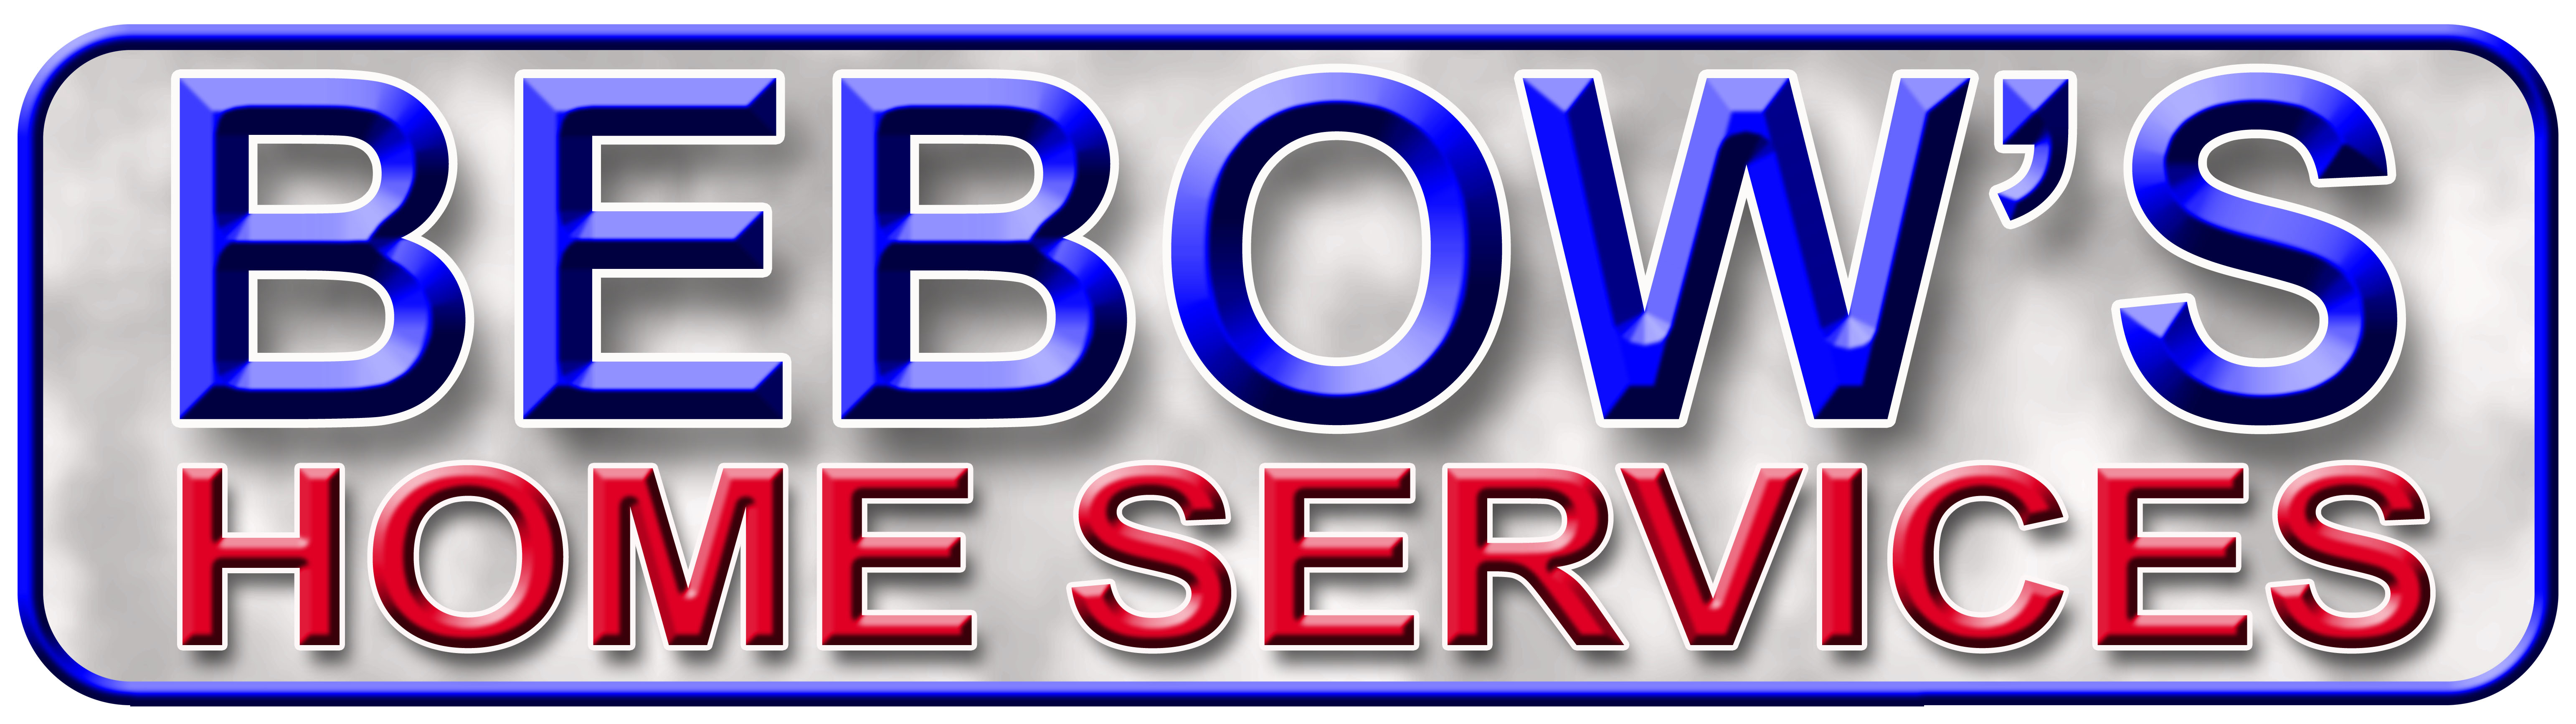 Bebow S Home Services